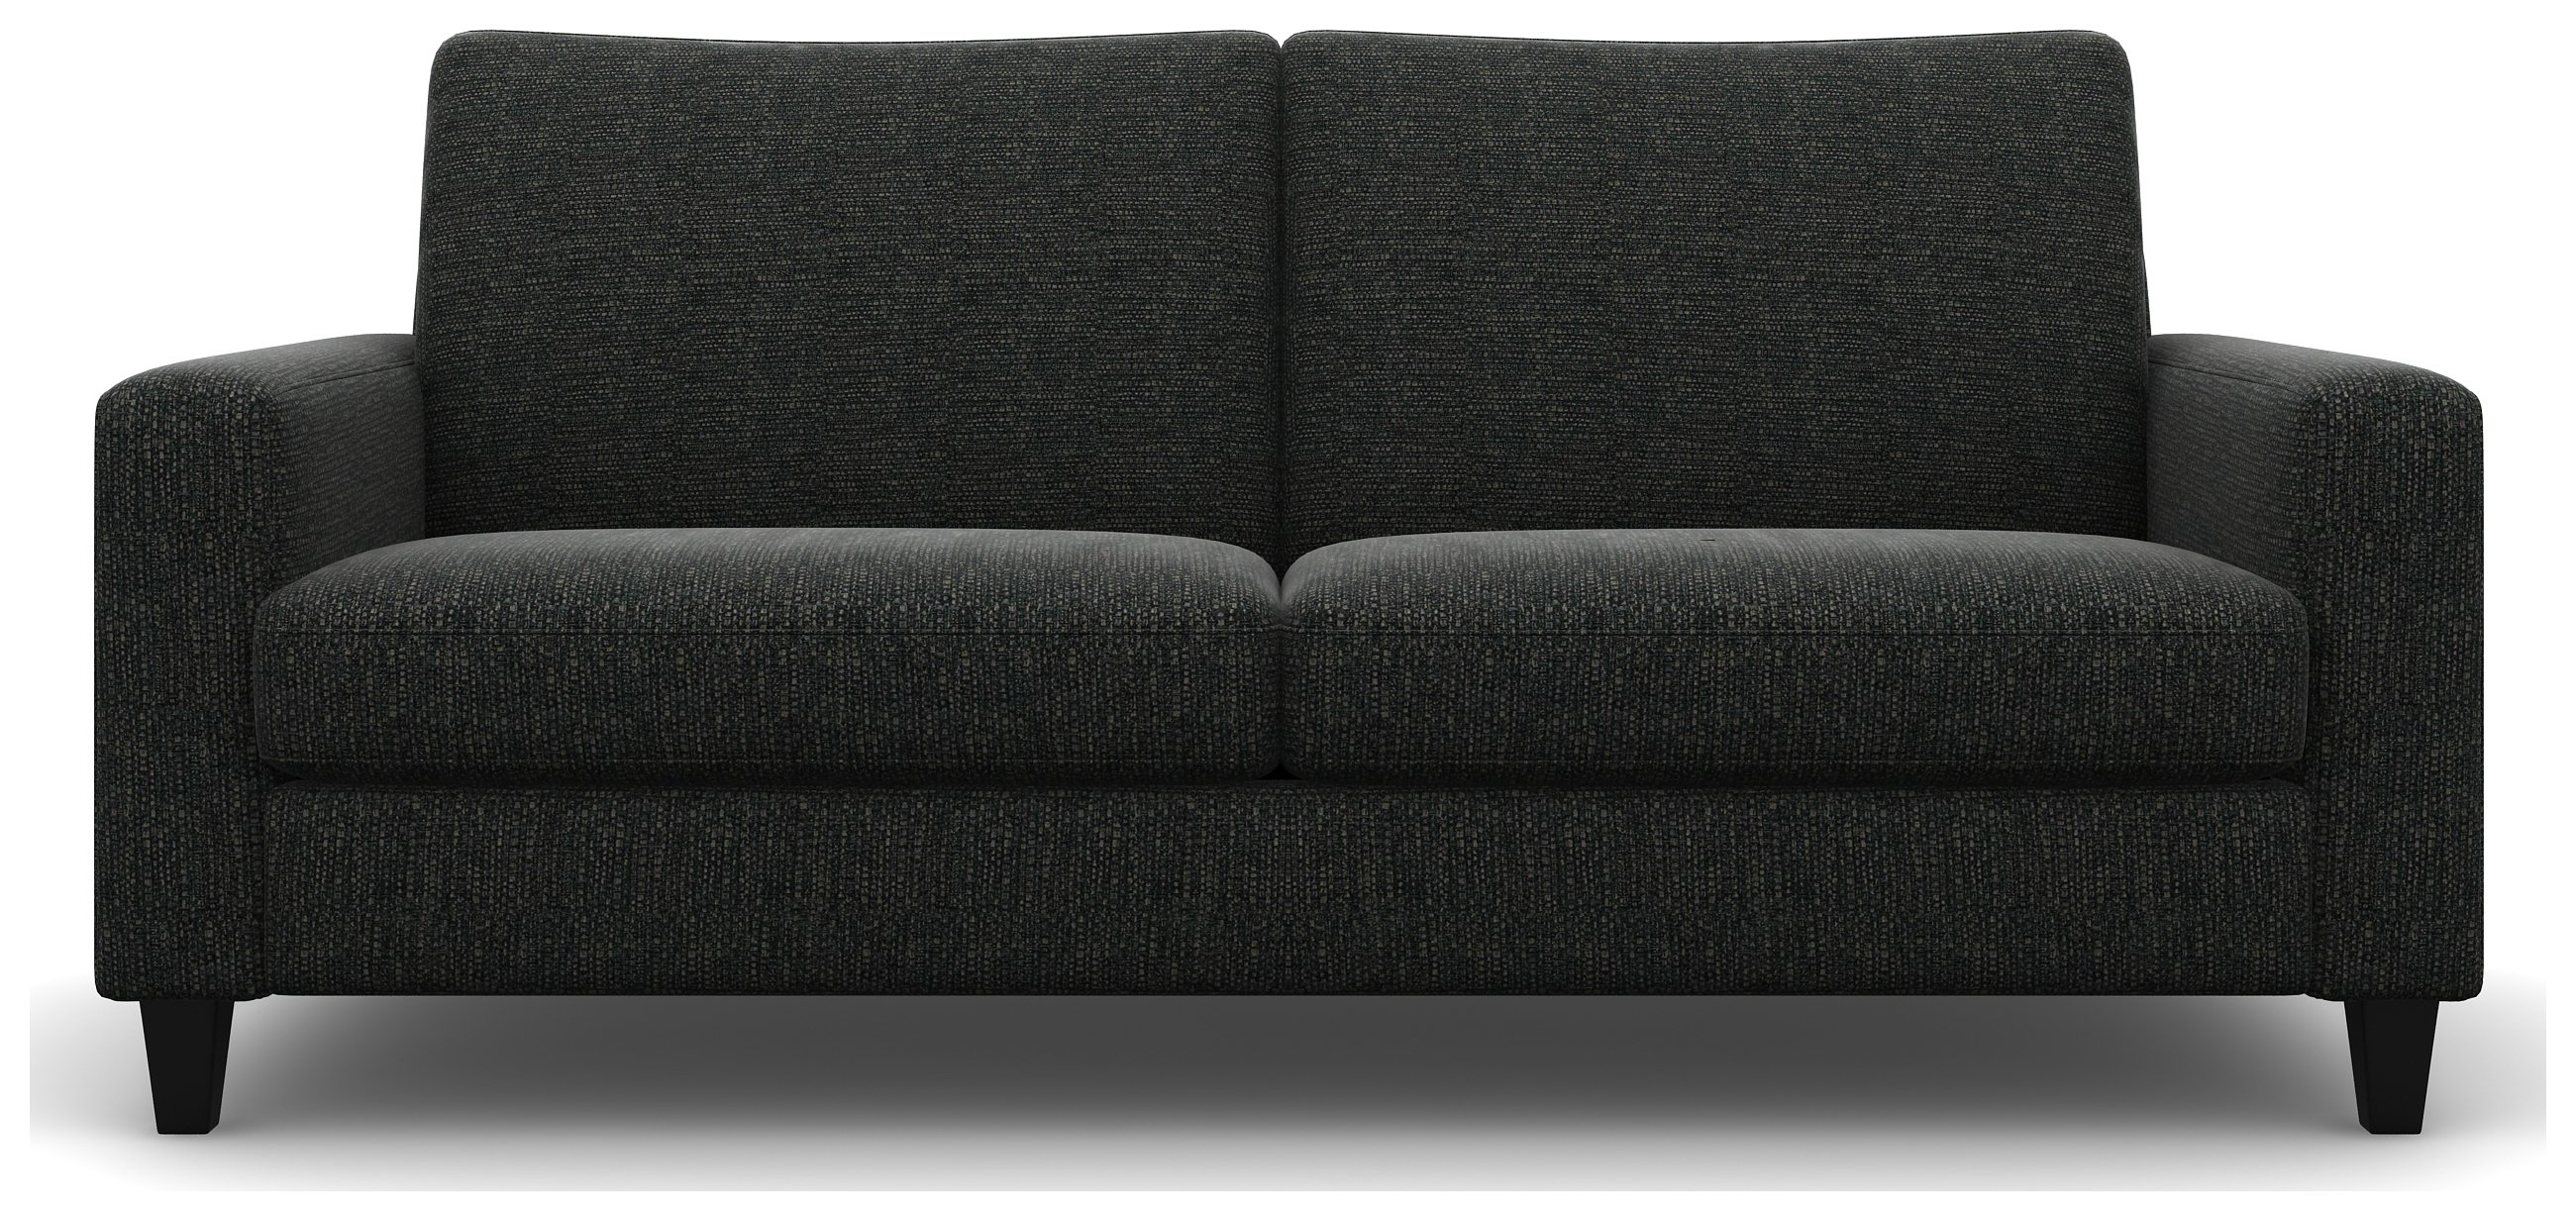 Heart of House Harrison 4 Seater Fabric Sofa - Dark Grey + Black Legs.